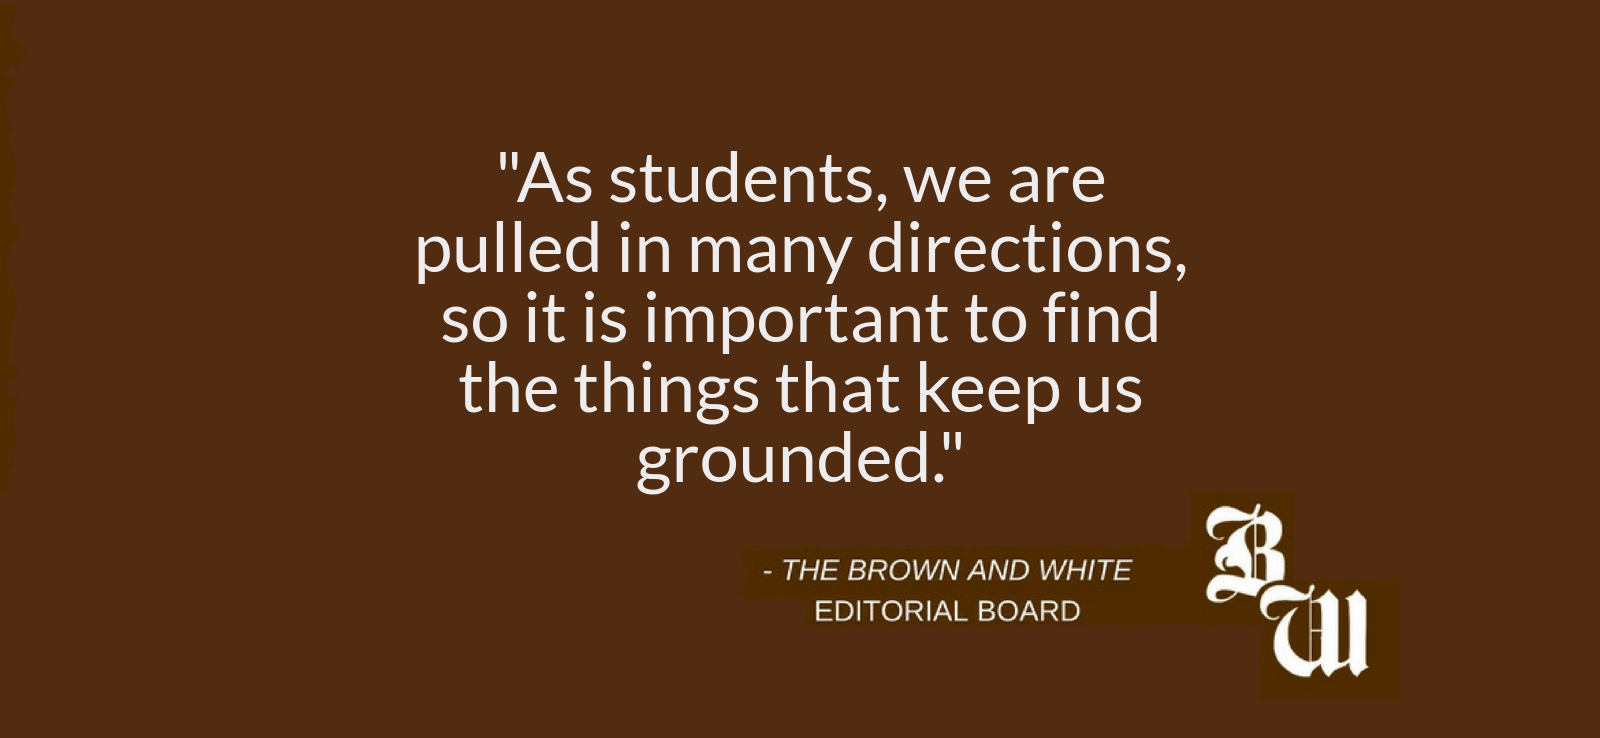 editorial the lehigh balancing act the brown and white